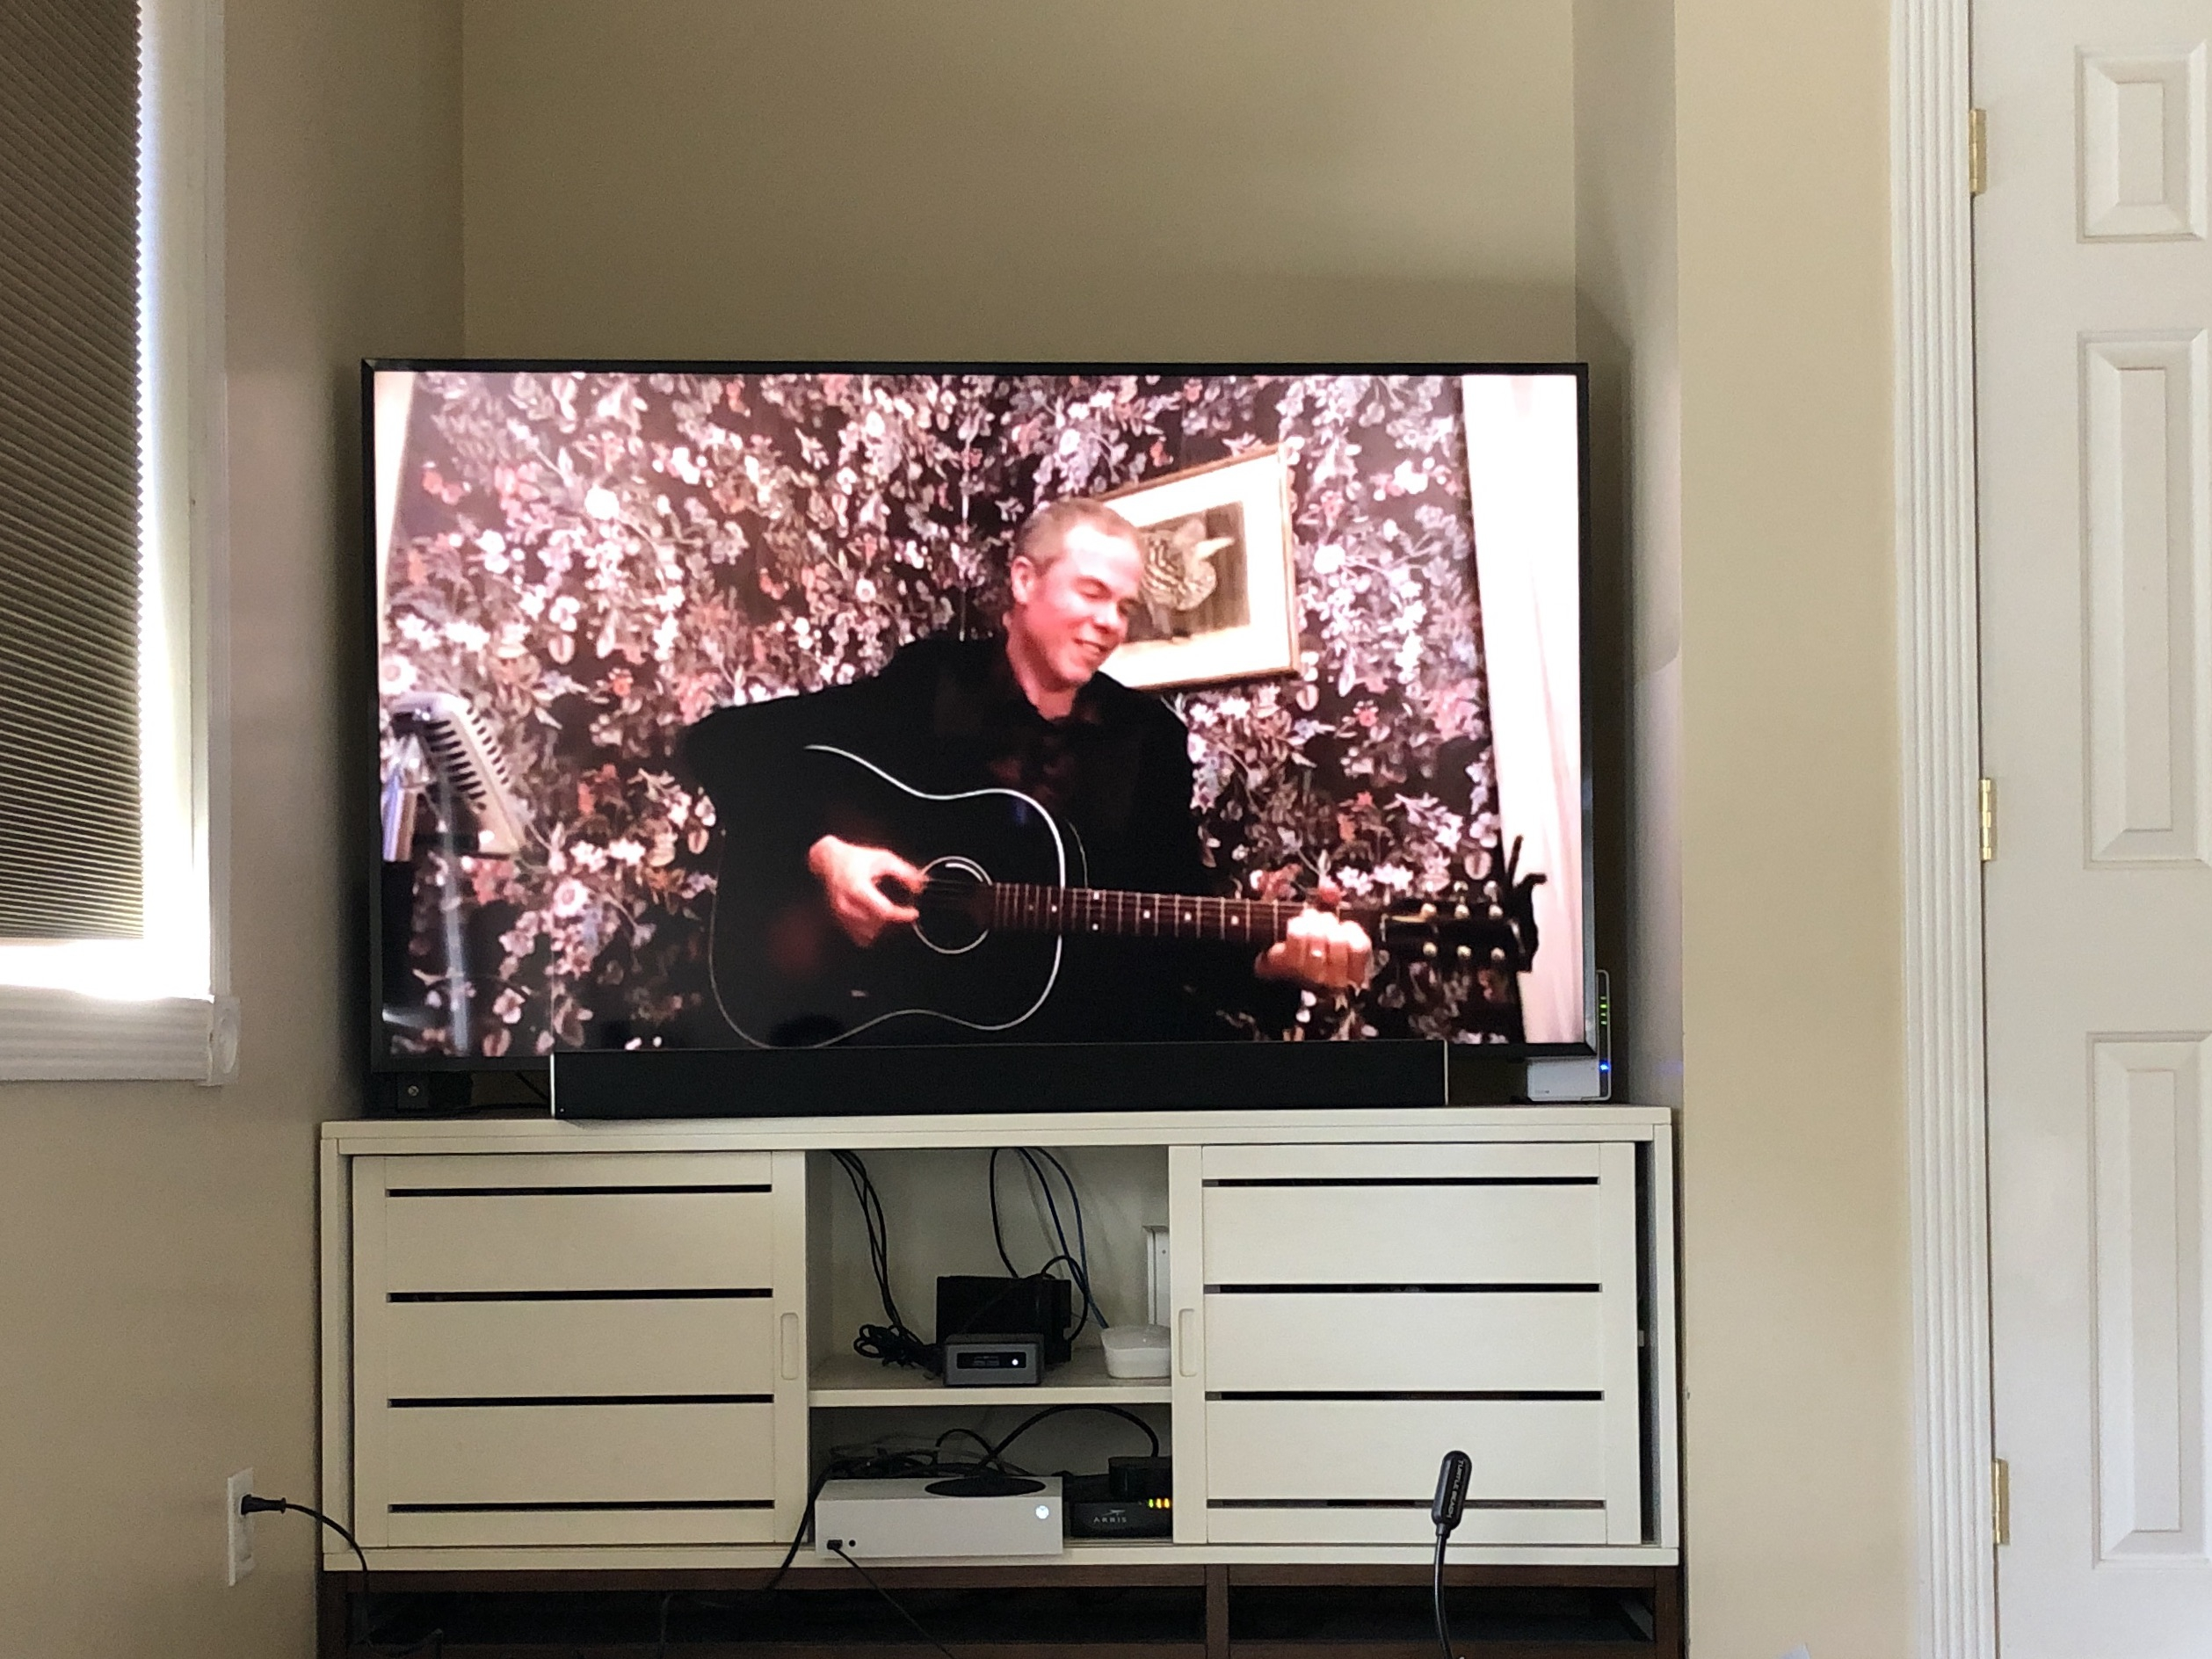 Photo of a TV screen showing Josh Ritter playing a guitar and smiling